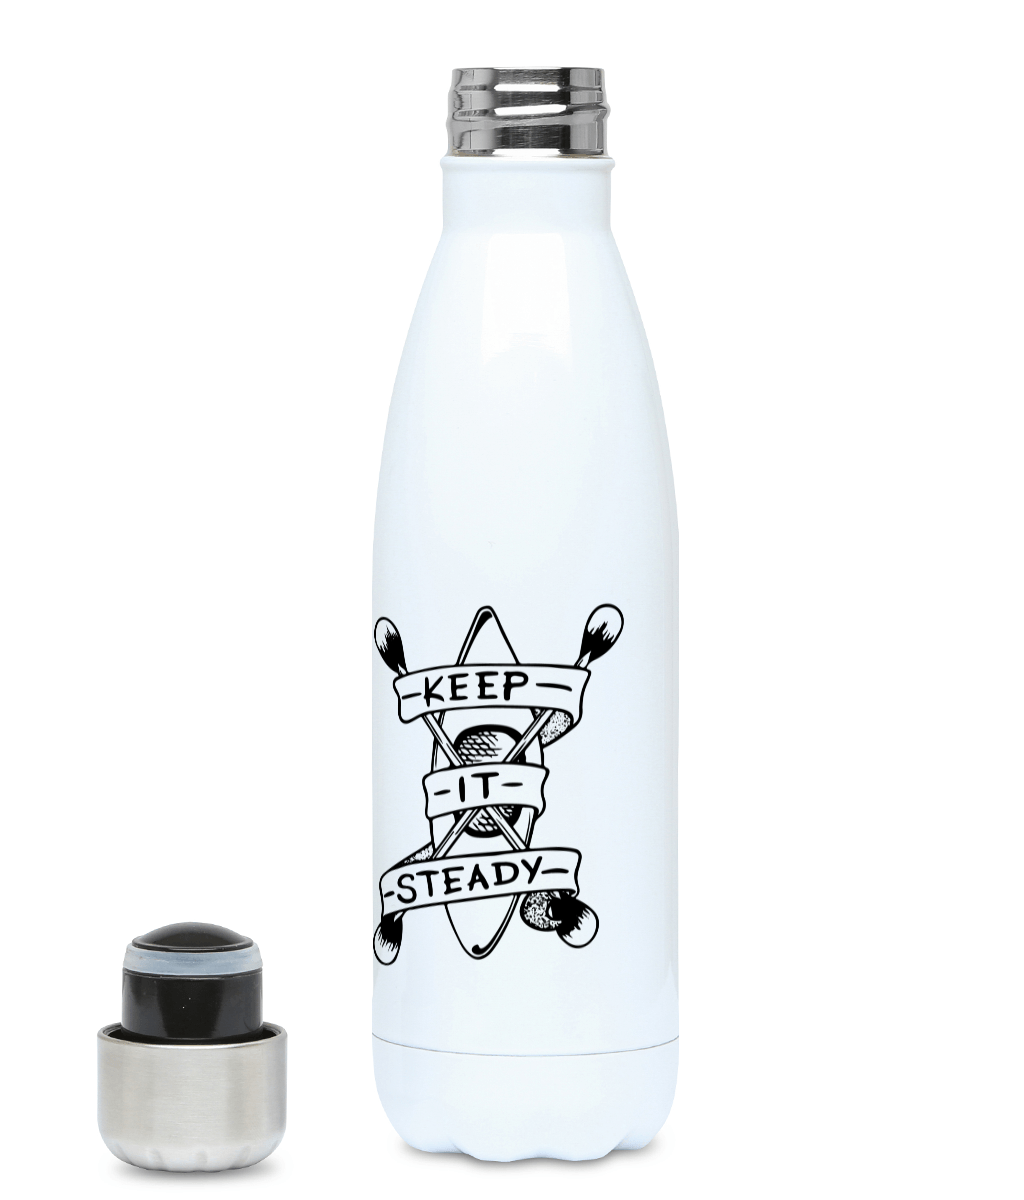 Keep It Steady - Plastic Free 500ml Water Bottle, Suggested Products, Pen and Ink Studios Adventure Clothing